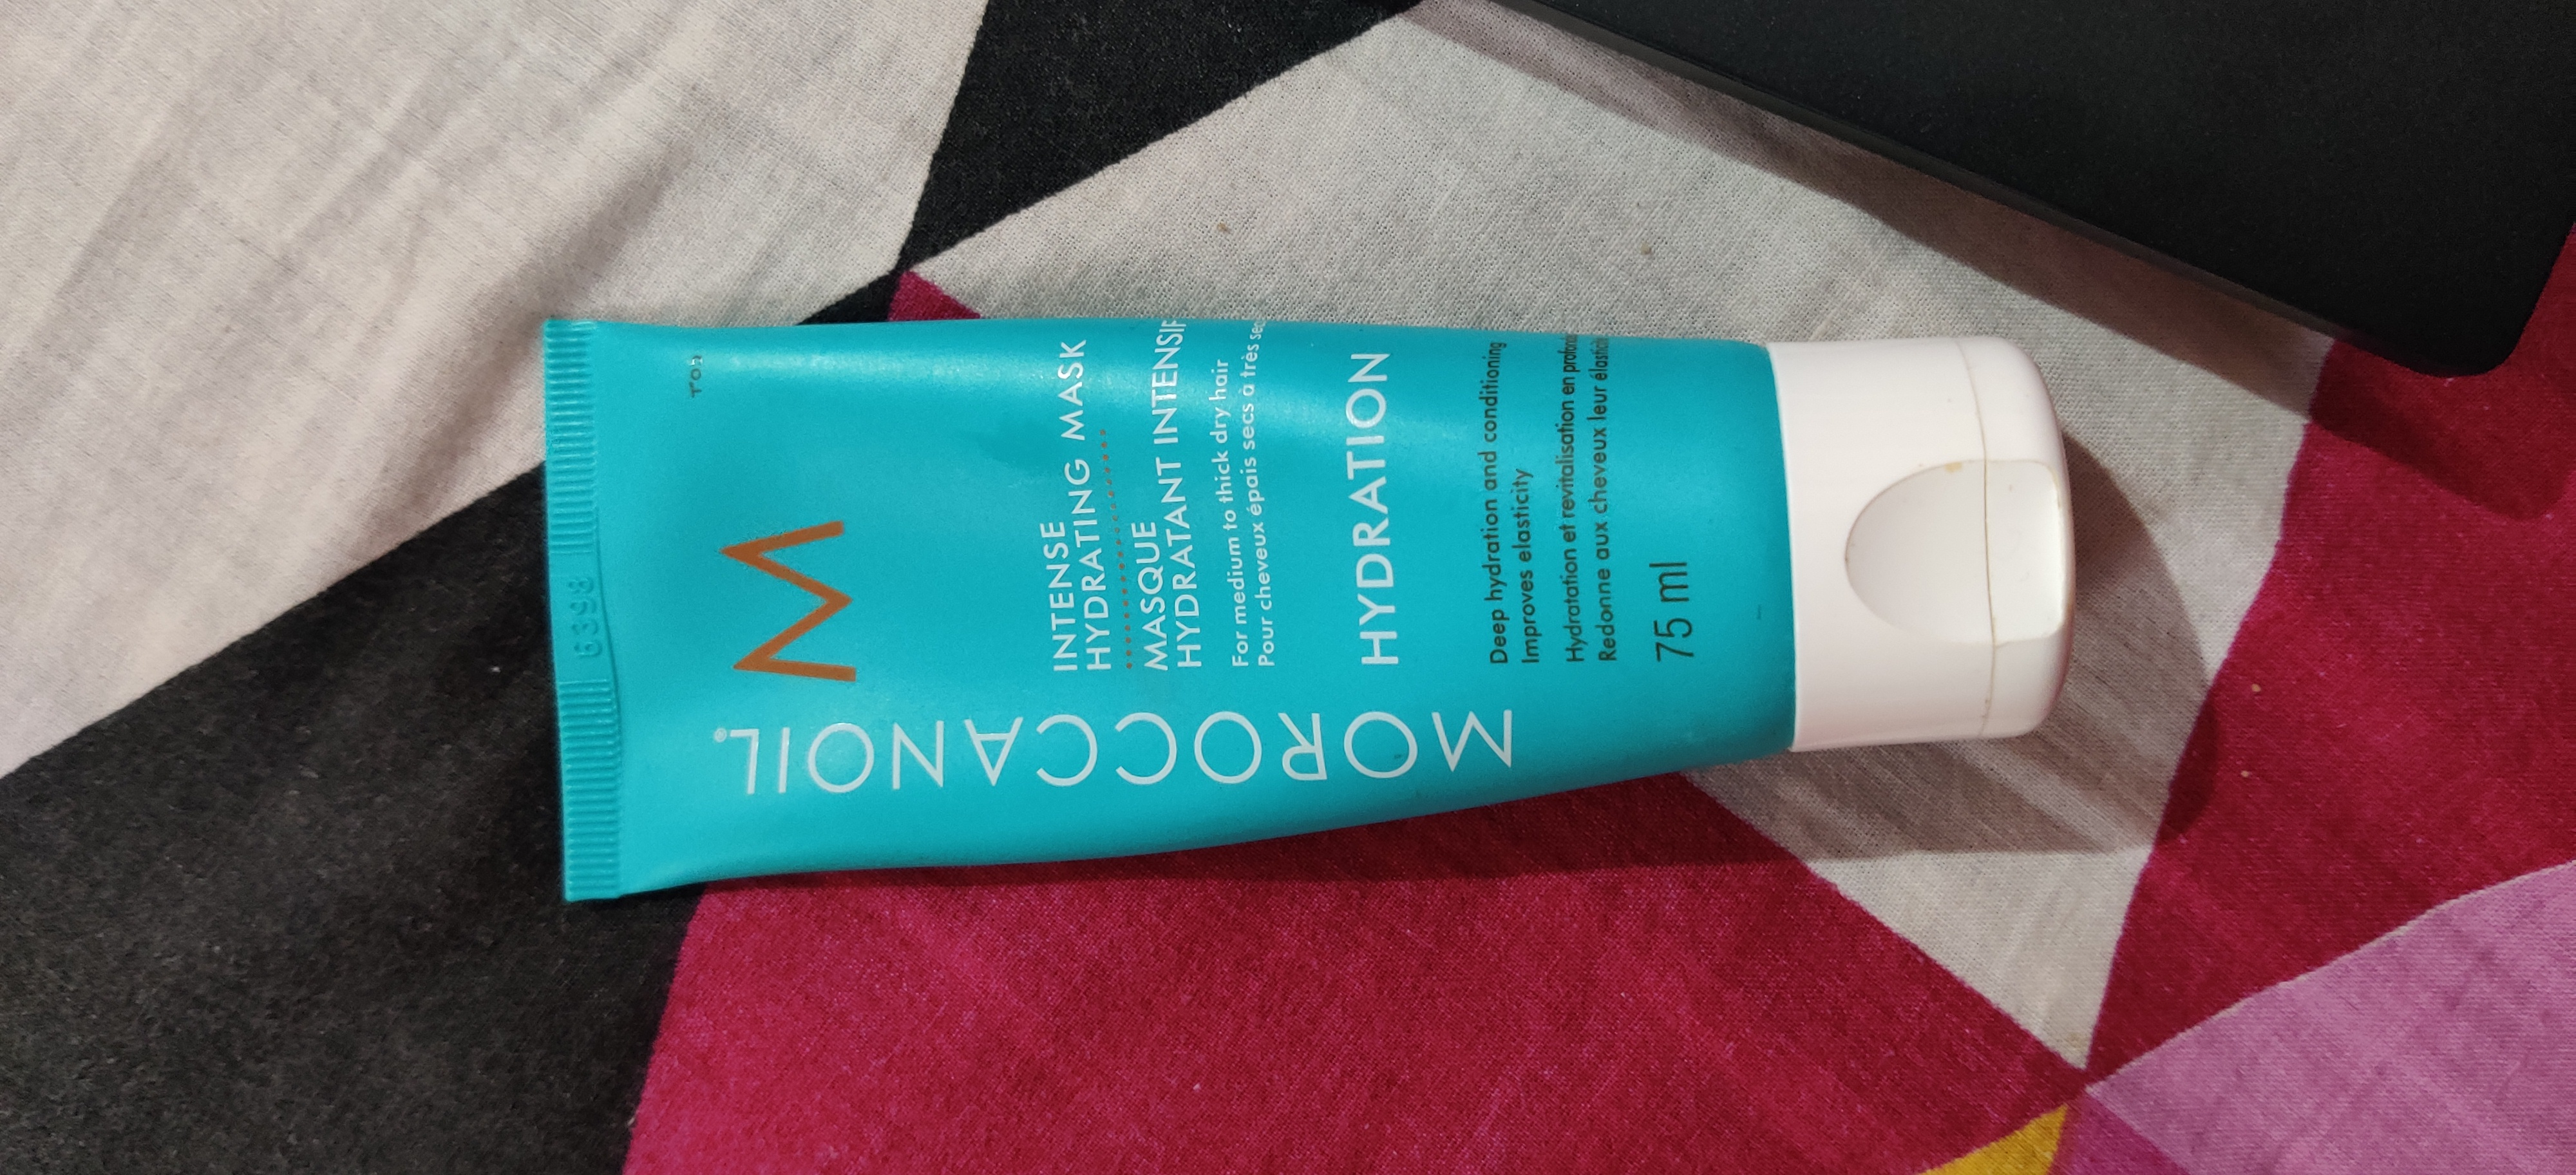 Moroccanoil Moisture Repair Shampoo-Little Overpriced but good product !!-By qwerty12345